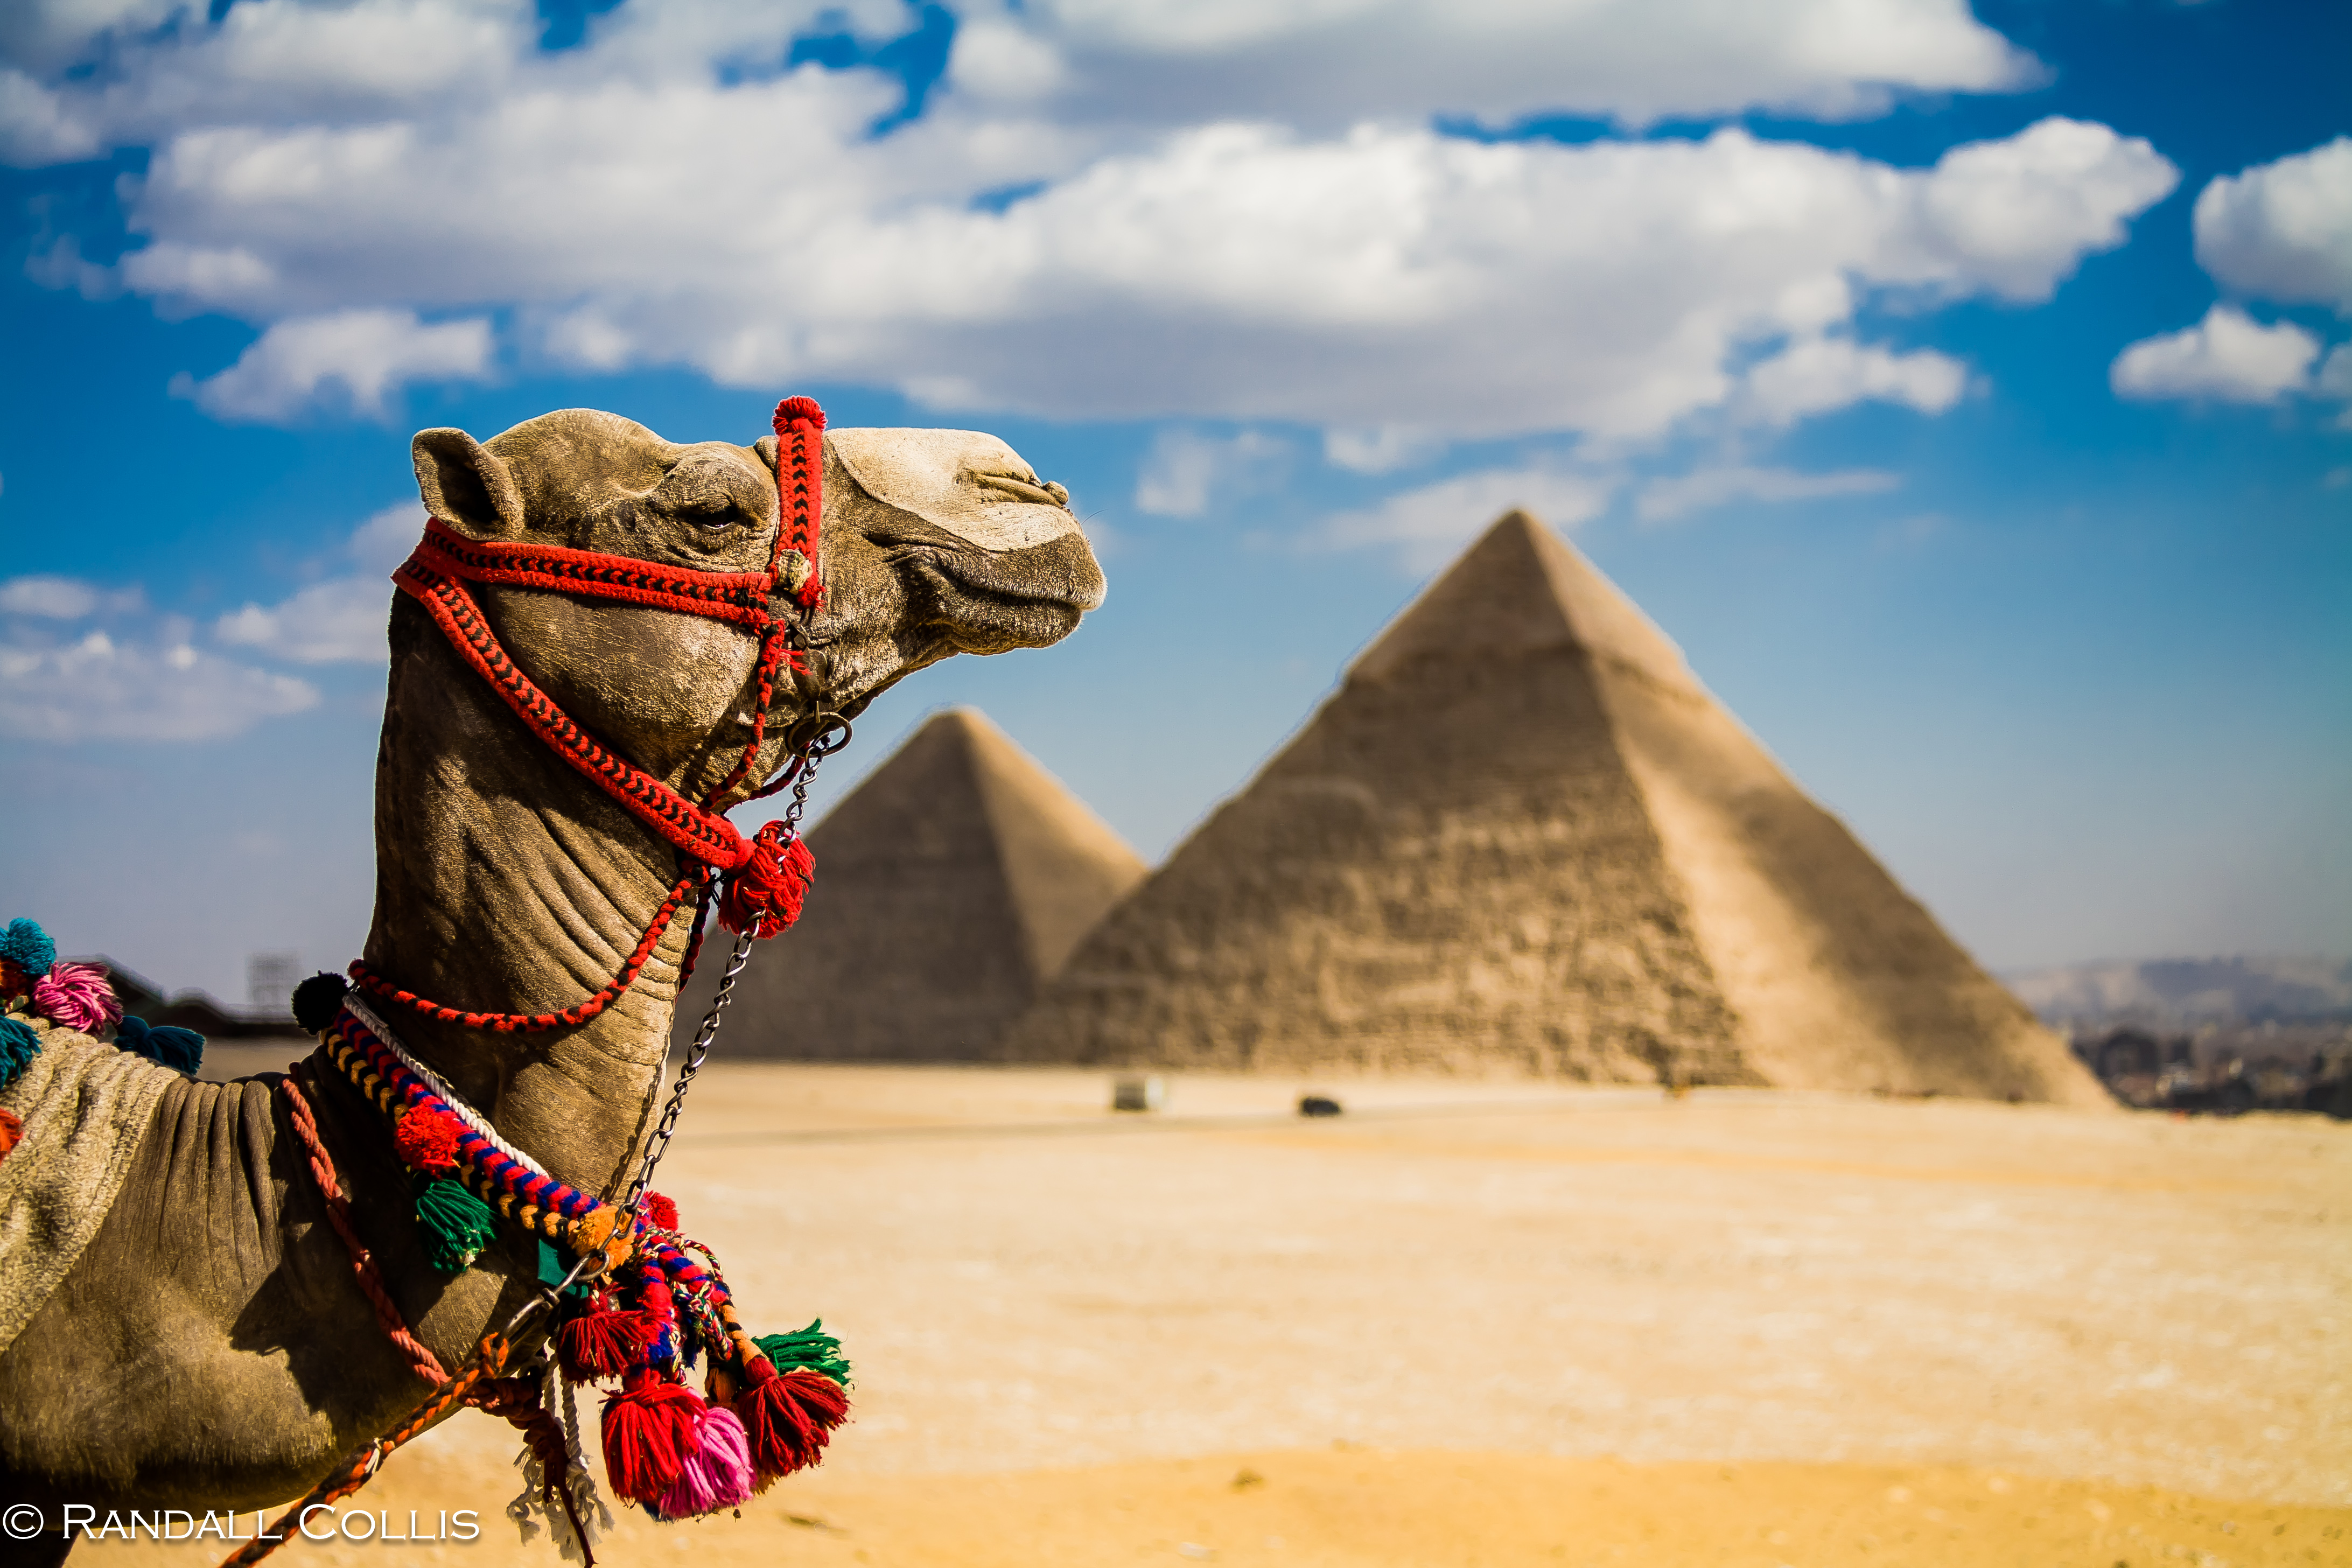 visit egypt Find out the best time to visit egypt with details on climate, seasons and events from audley specialists.